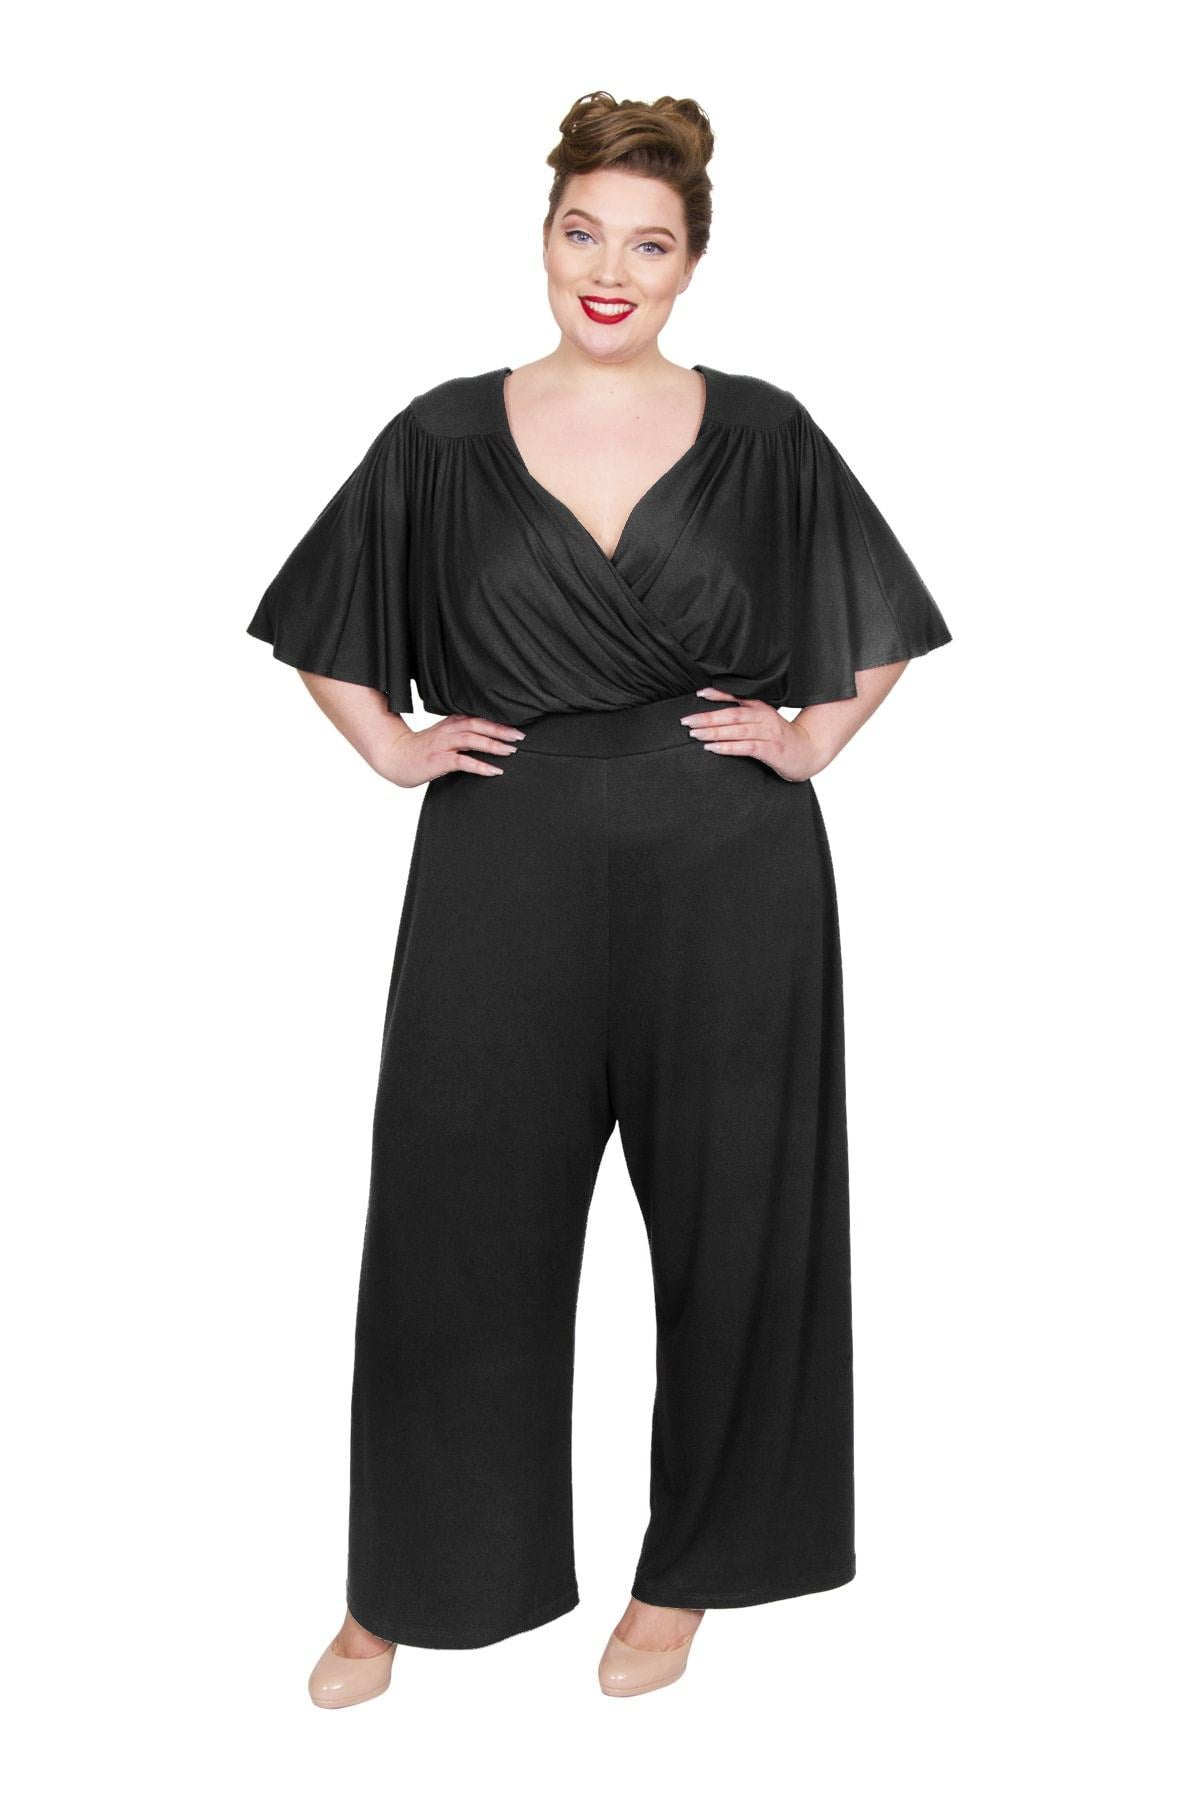 60s 70s Plus Size Dresses, Clothing, Costumes Wrap Lounge Jumpsuit - BLACK  30 �75.00 AT vintagedancer.com